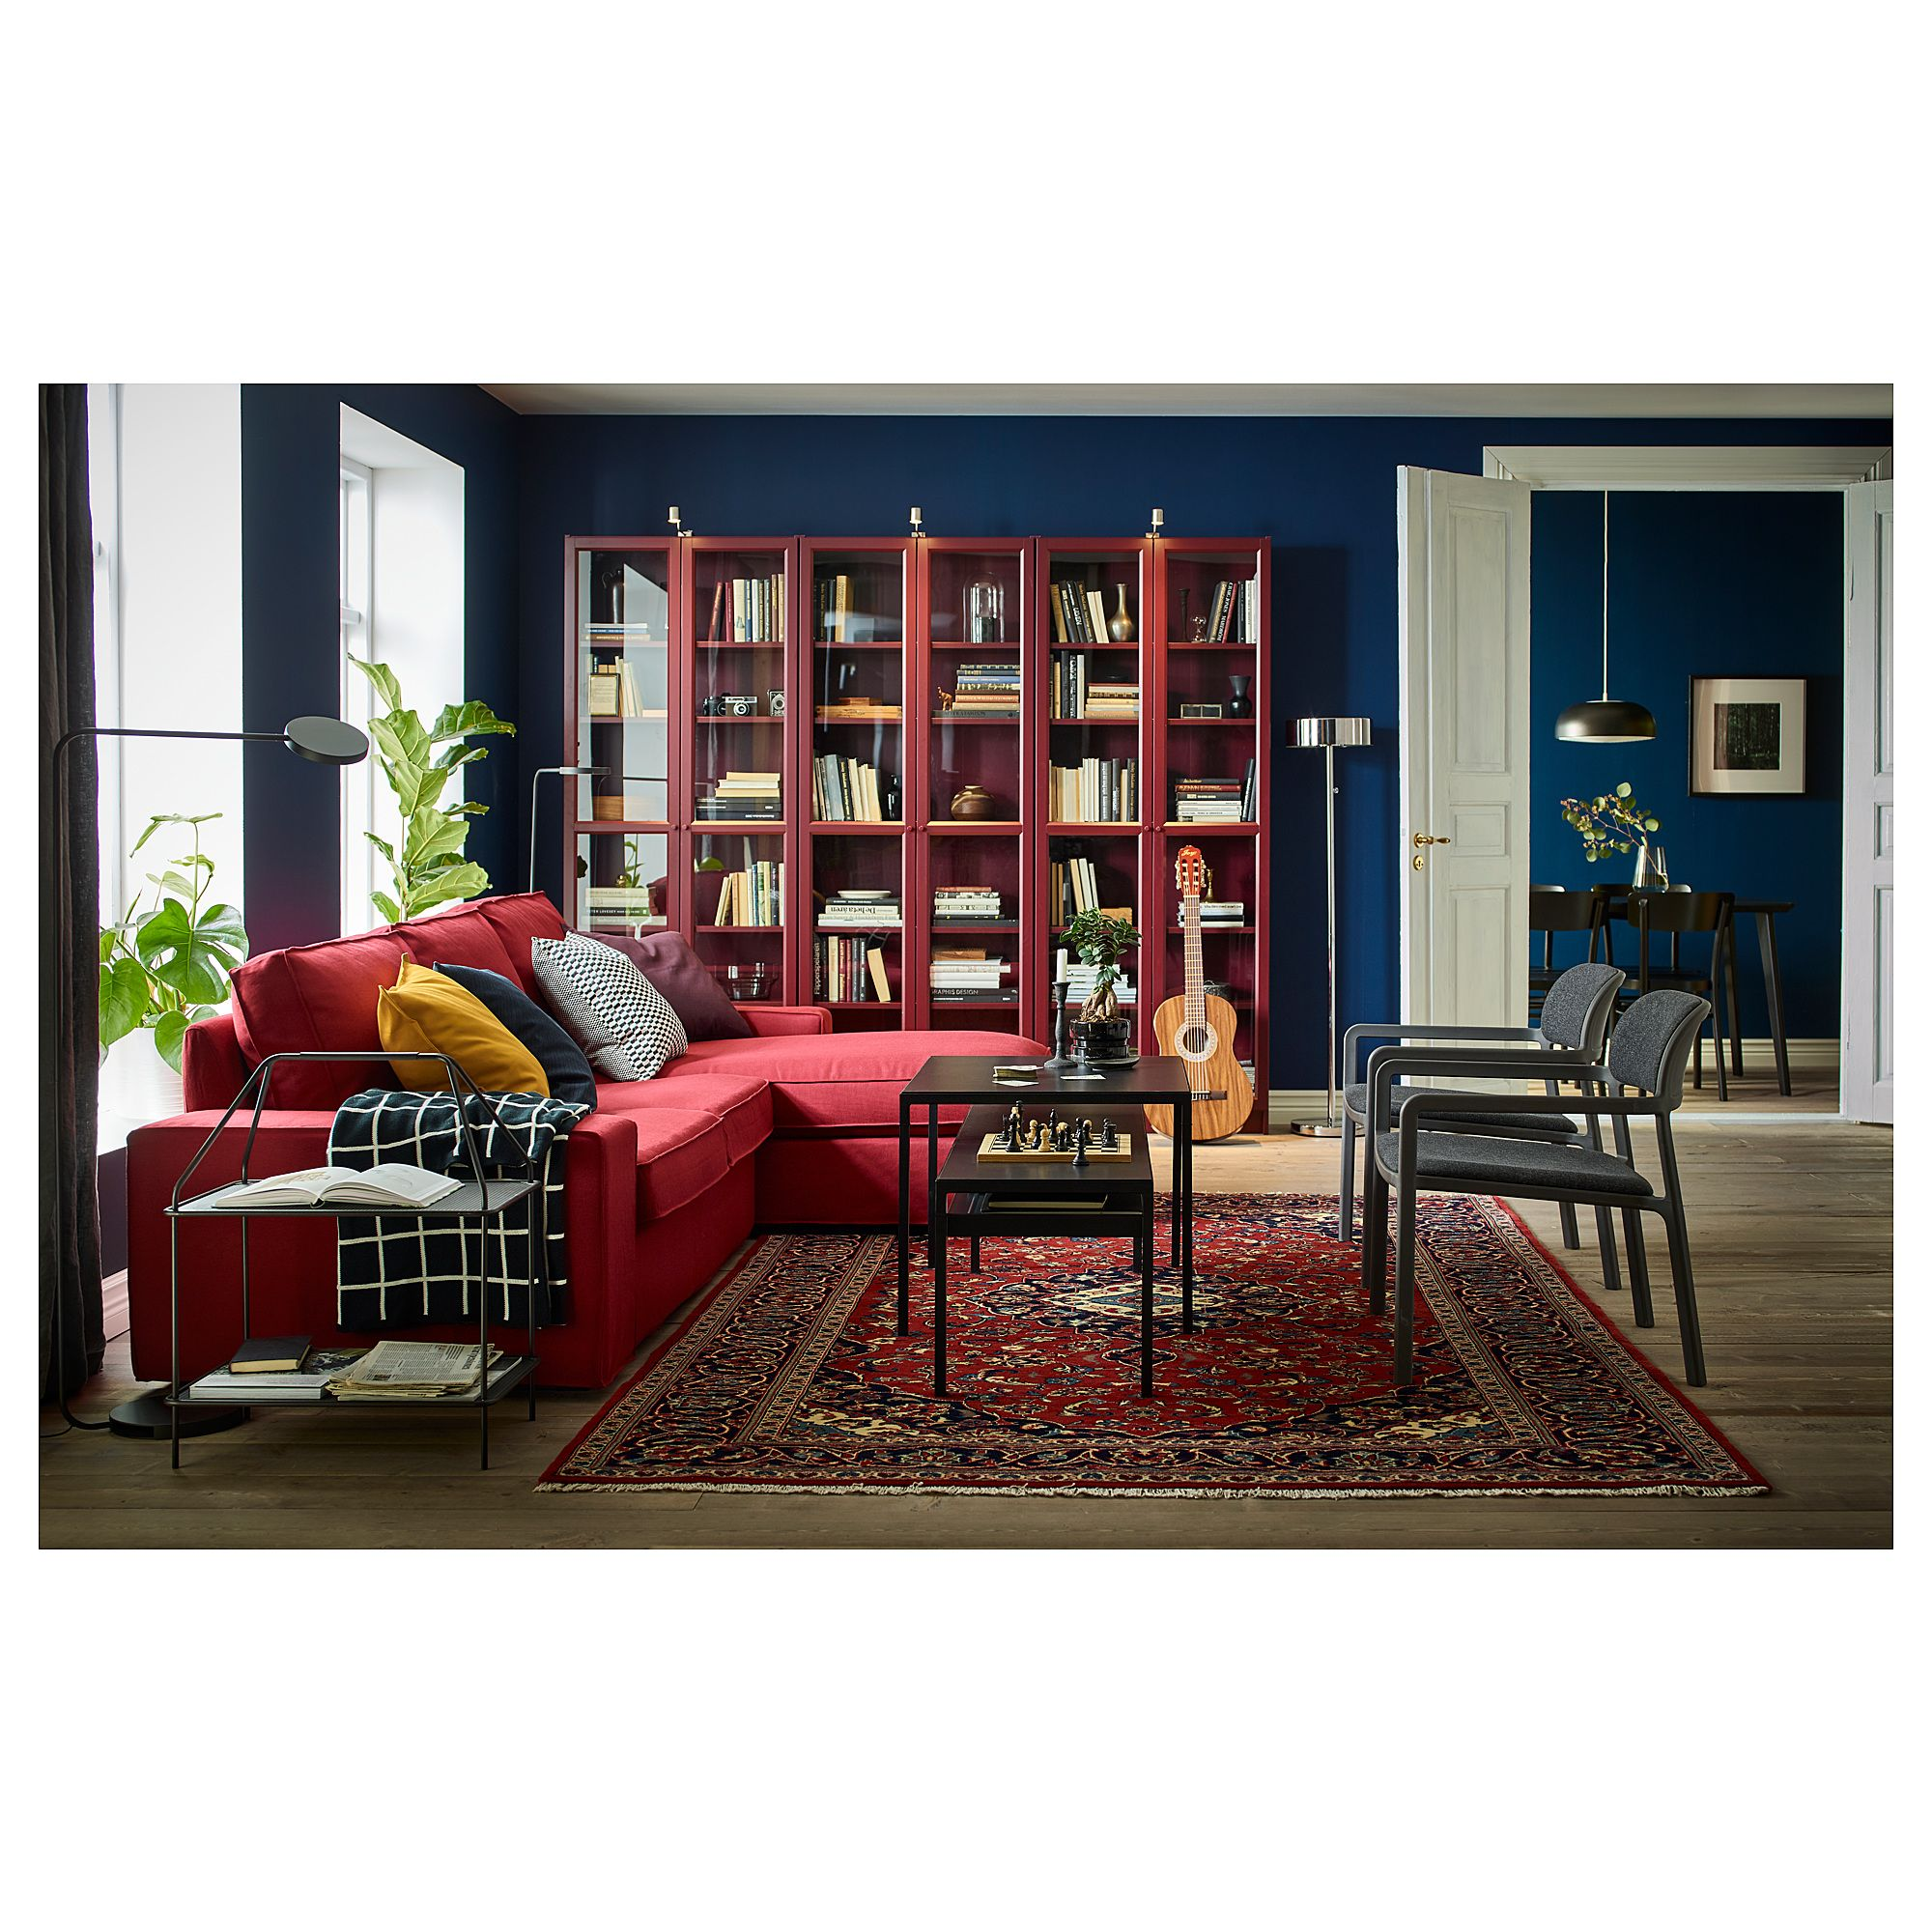 Ikea bookcase with glass doors  IKEA  BILLY Bookcase with glass doors dark red  IKEA Billy